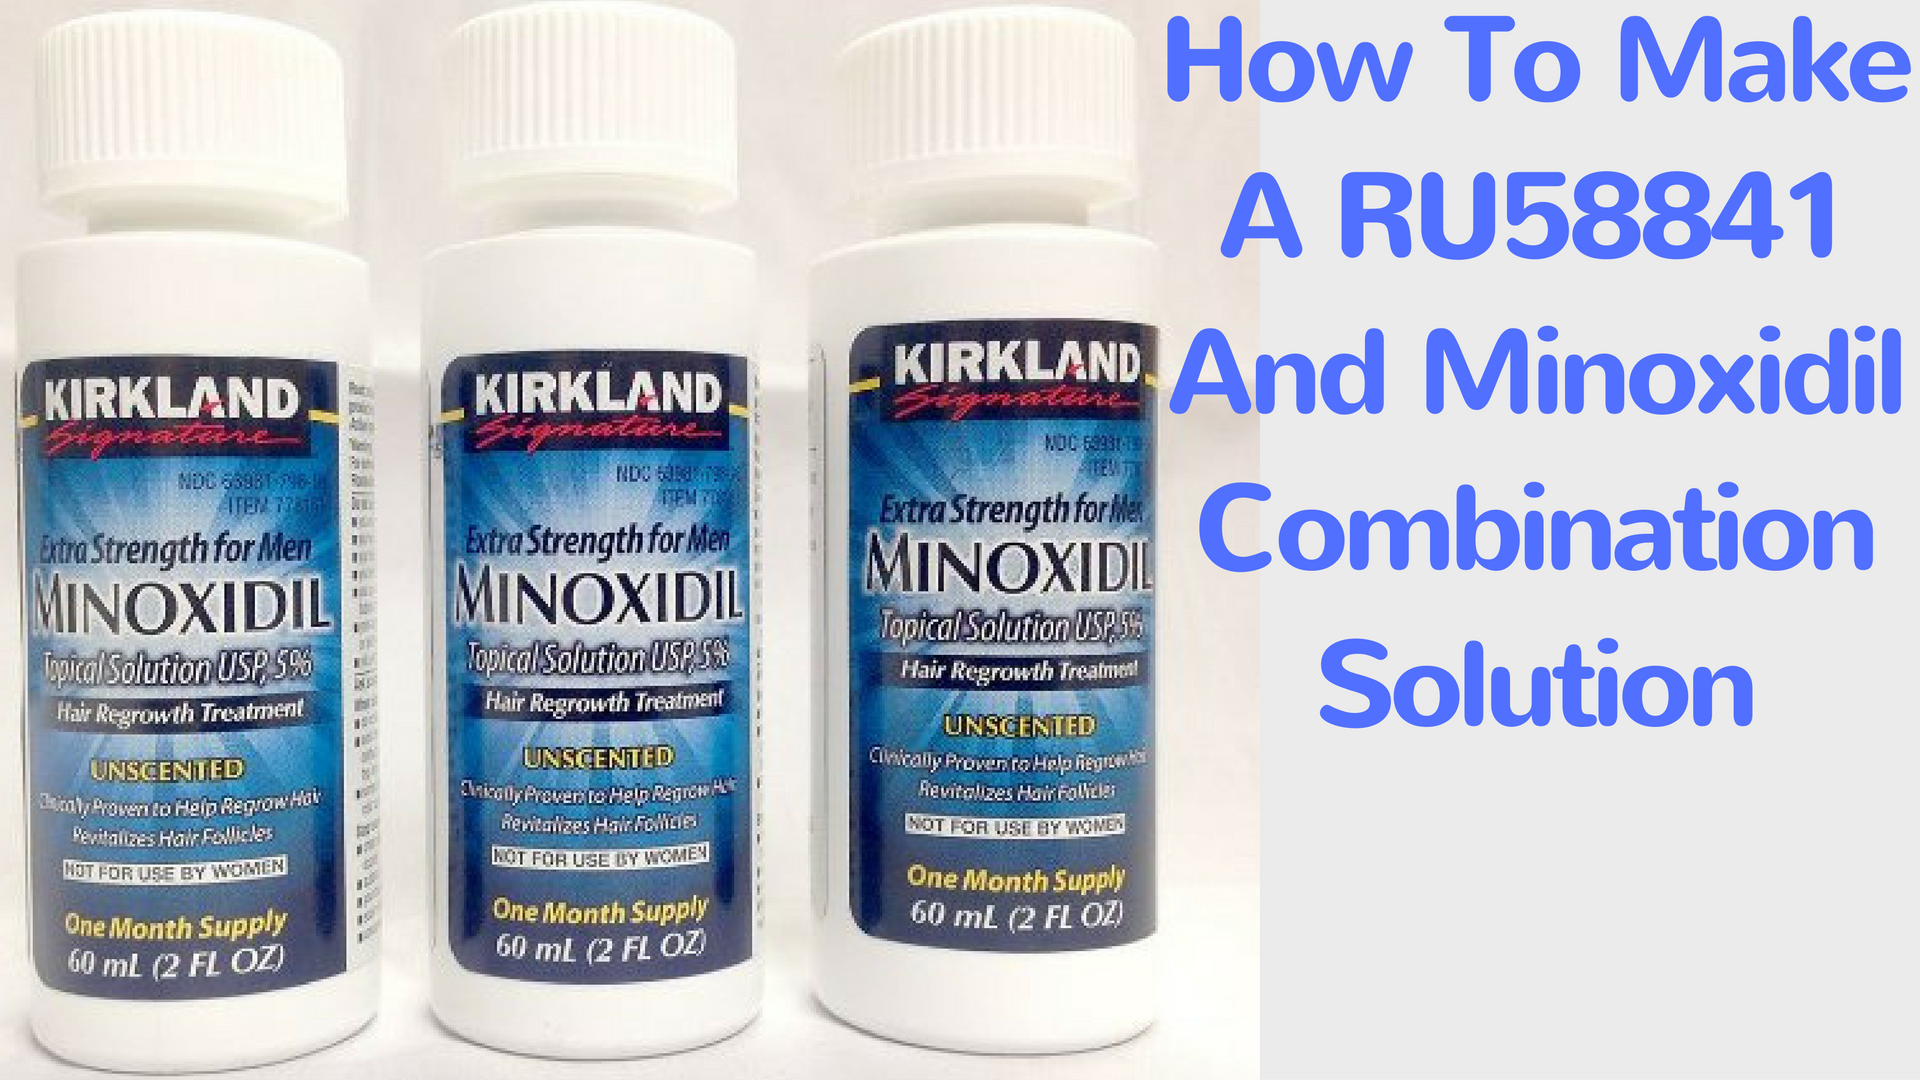 How To Make A Ru58841 And Minoxidil Combination Solution